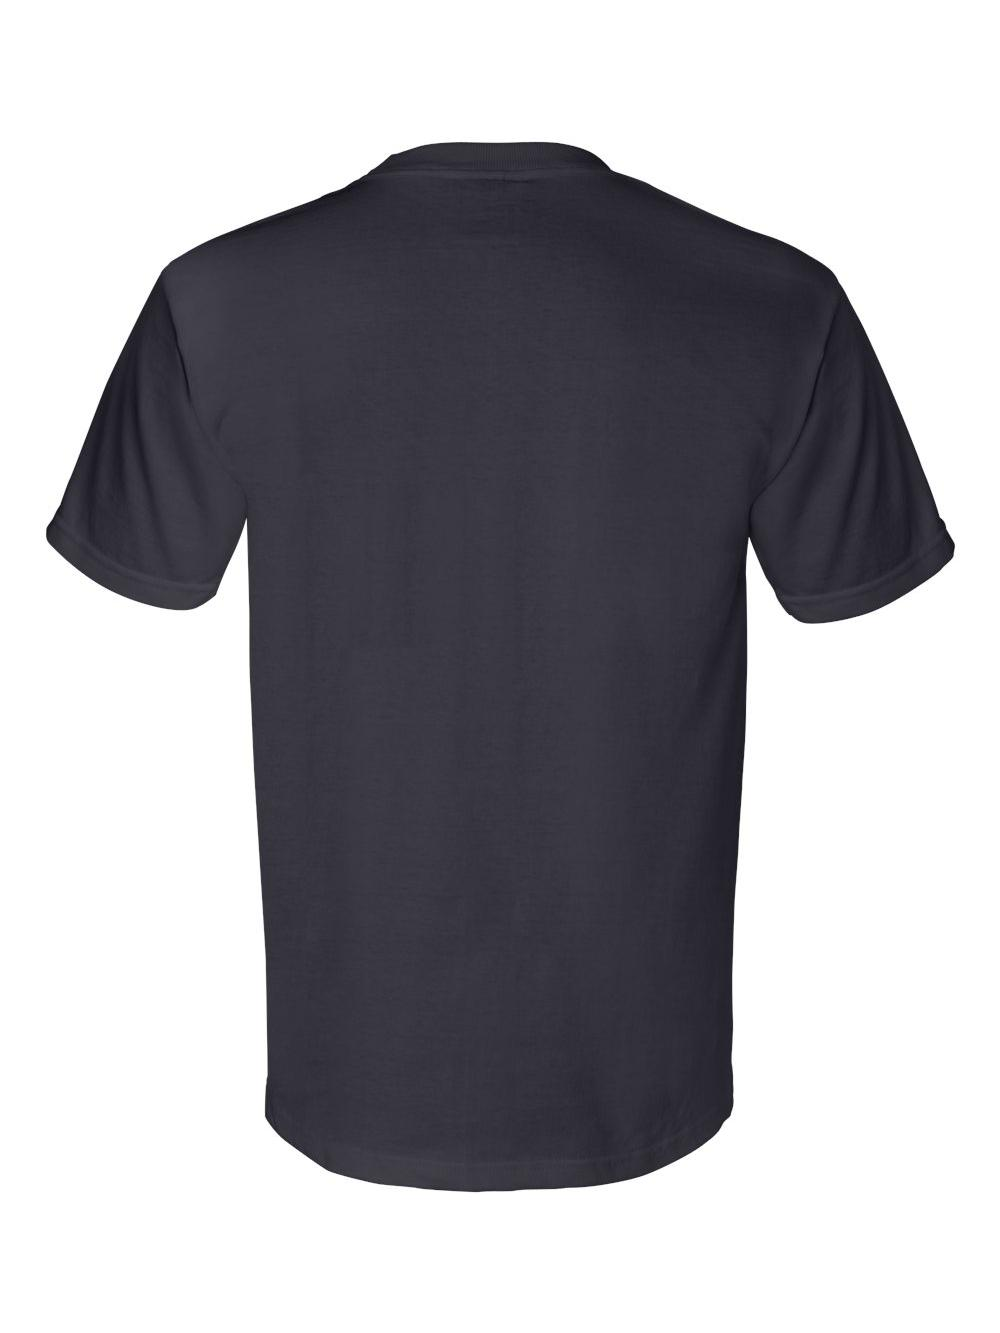 Bayside-Union-Made-Short-Sleeve-T-Shirt-with-a-Pocket-3015 thumbnail 19